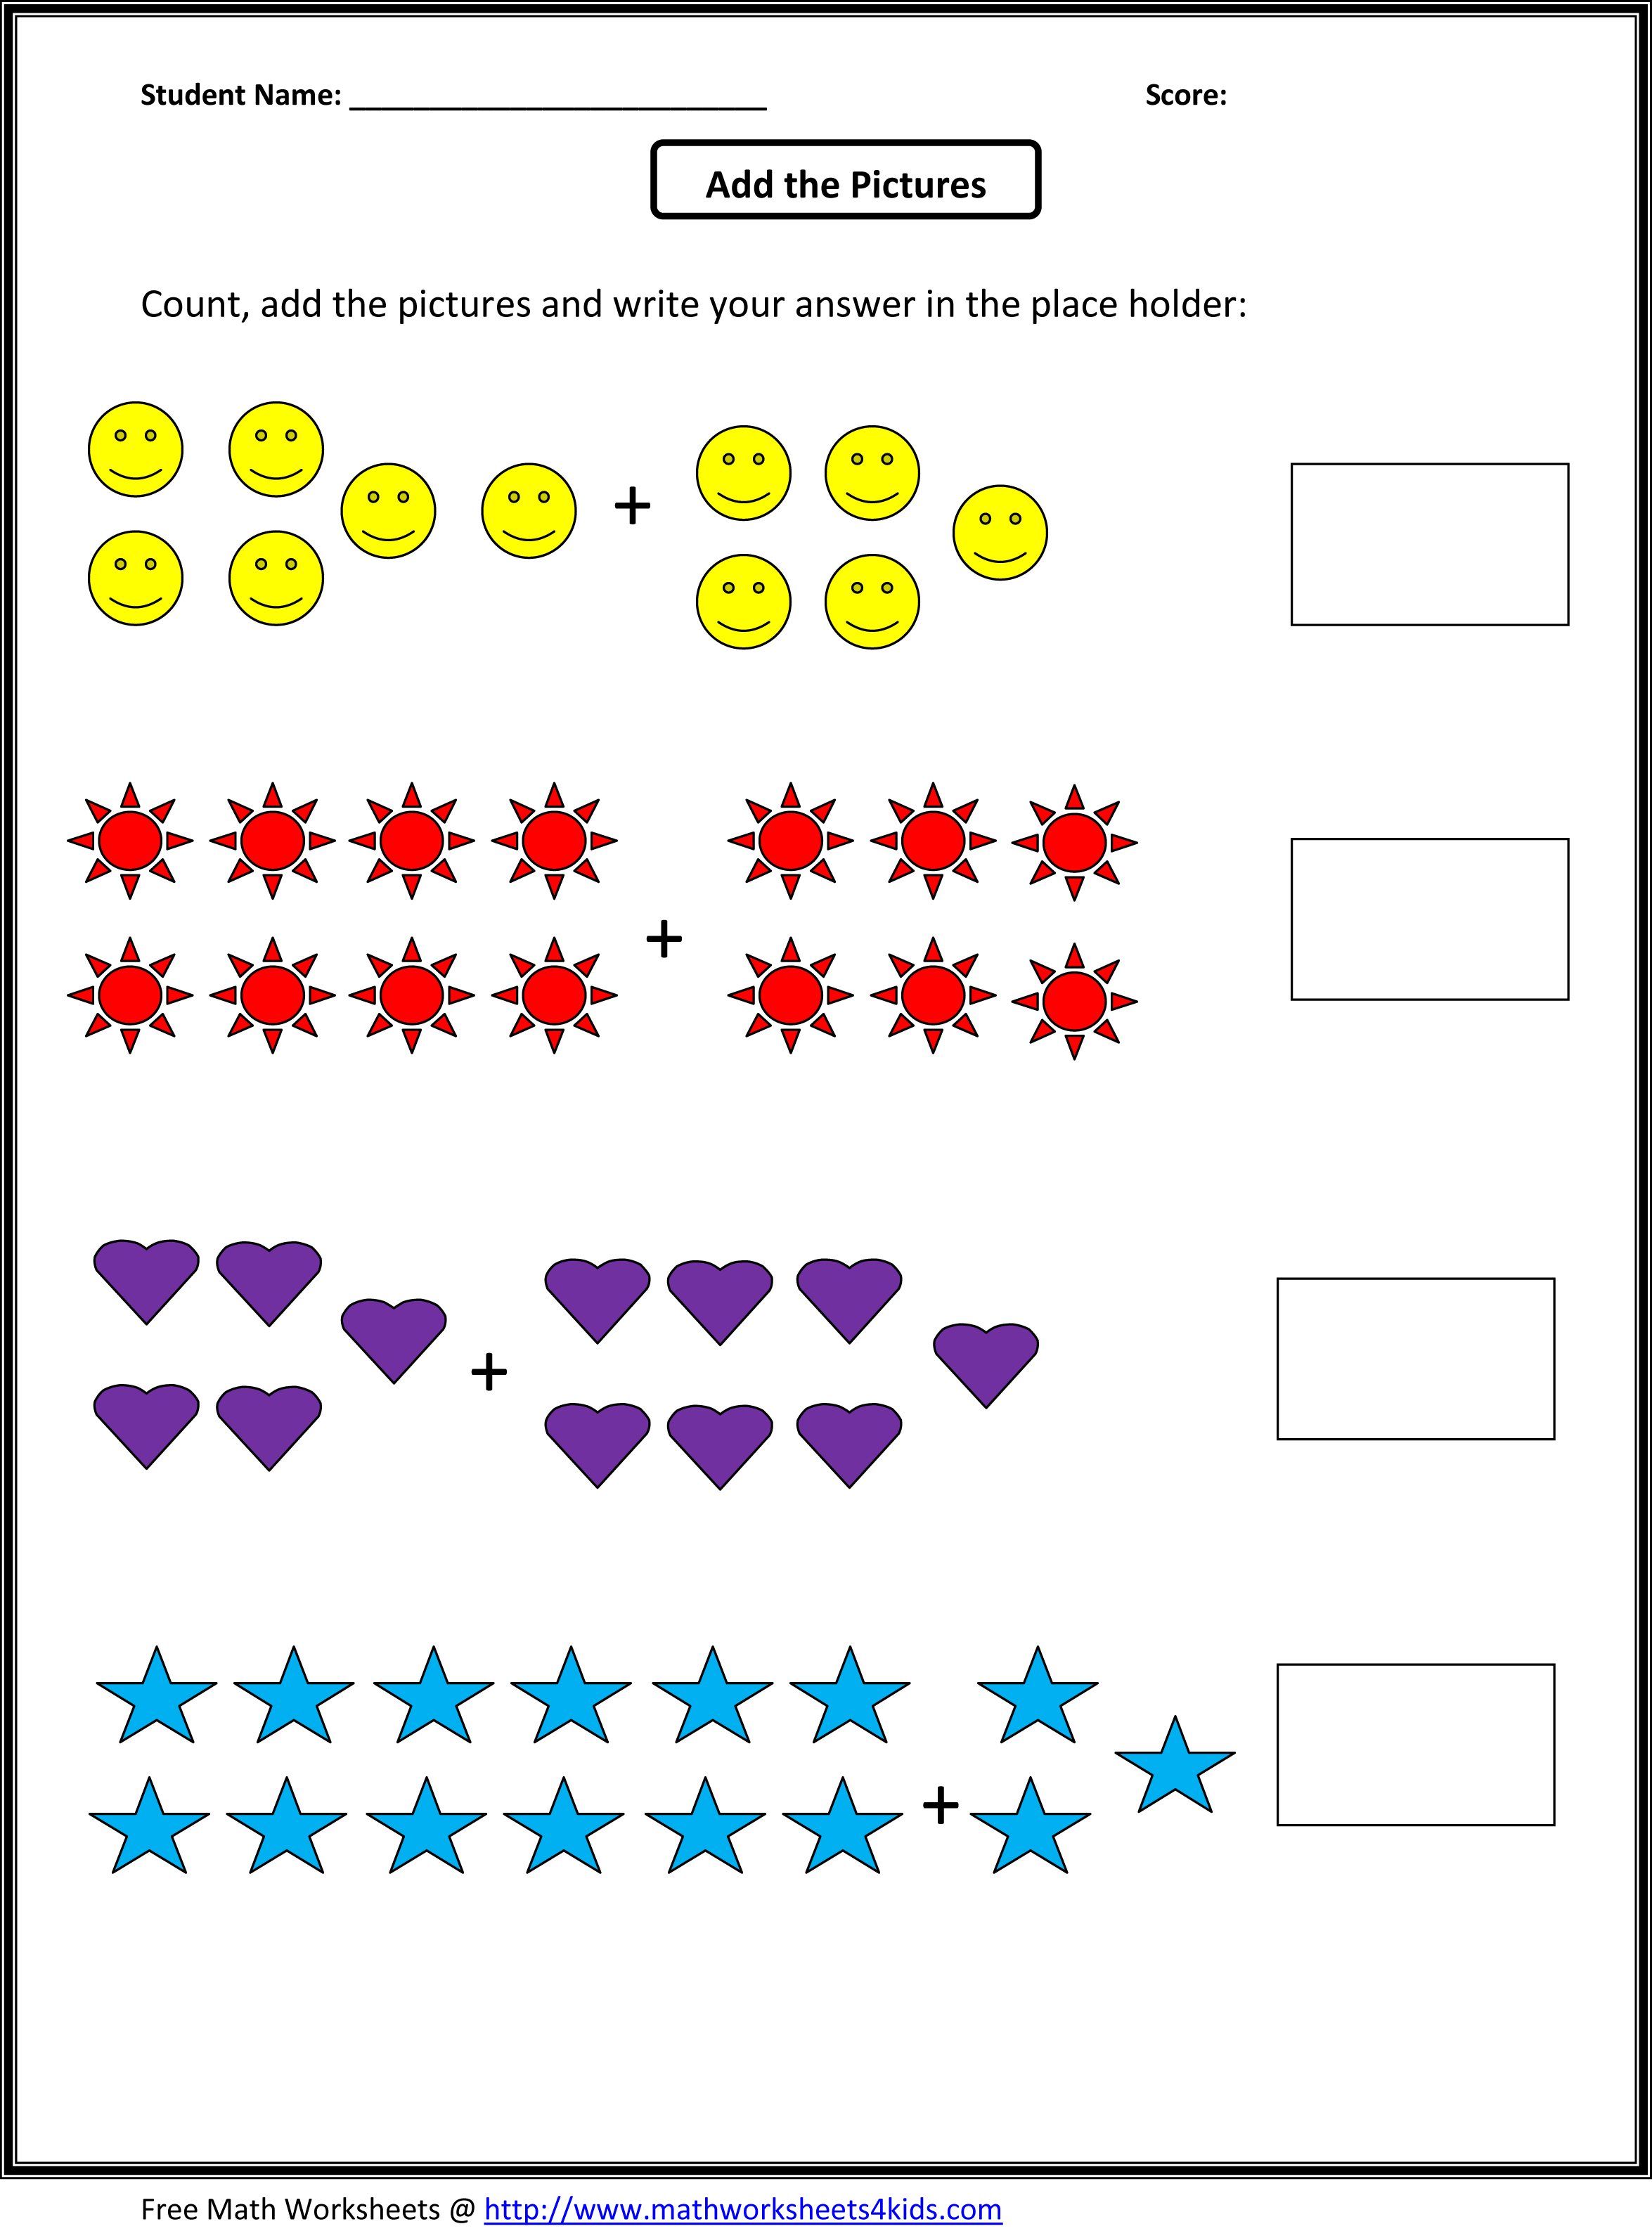 Weirdmailus  Sweet Grade  Maths Worksheet  Reocurent With Gorgeous Math Worksheets For St Grade Free  Reocurent With Extraordinary Probability Worksheet Middle School Also The Great Plant Escape Worksheet Answers In Addition Grief Worksheets For Children And Connecting Dots Worksheets As Well As Counseling Worksheets For Kids Additionally Childrens Worksheets From Reocurentcom With Weirdmailus  Gorgeous Grade  Maths Worksheet  Reocurent With Extraordinary Math Worksheets For St Grade Free  Reocurent And Sweet Probability Worksheet Middle School Also The Great Plant Escape Worksheet Answers In Addition Grief Worksheets For Children From Reocurentcom